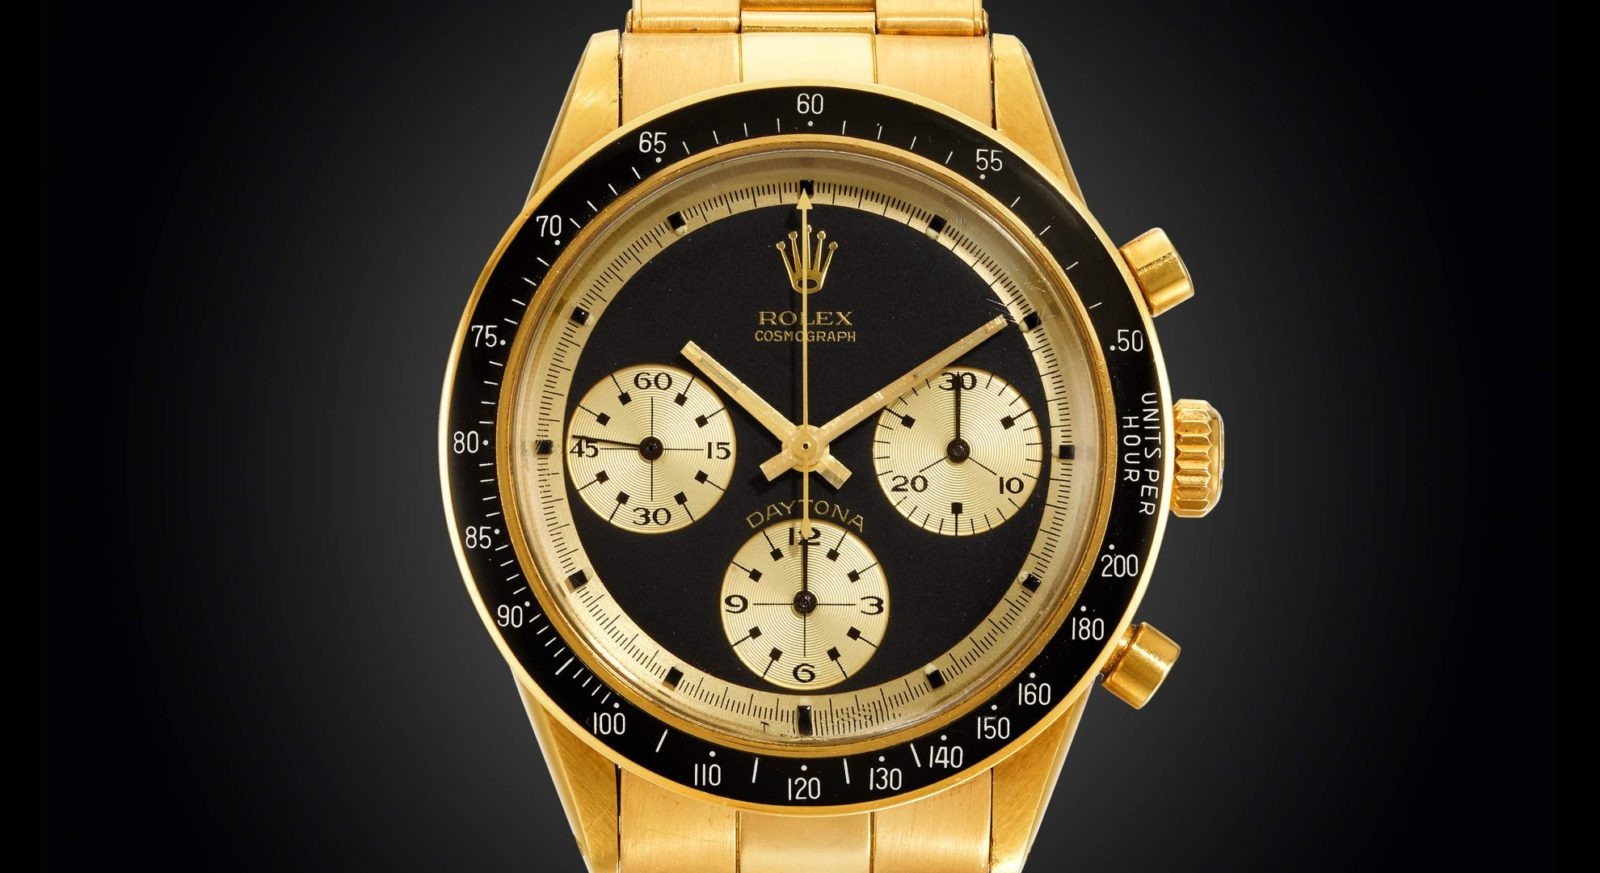 A Rolex Daytona sets a record as the most expensive watch ever sold in an online auction